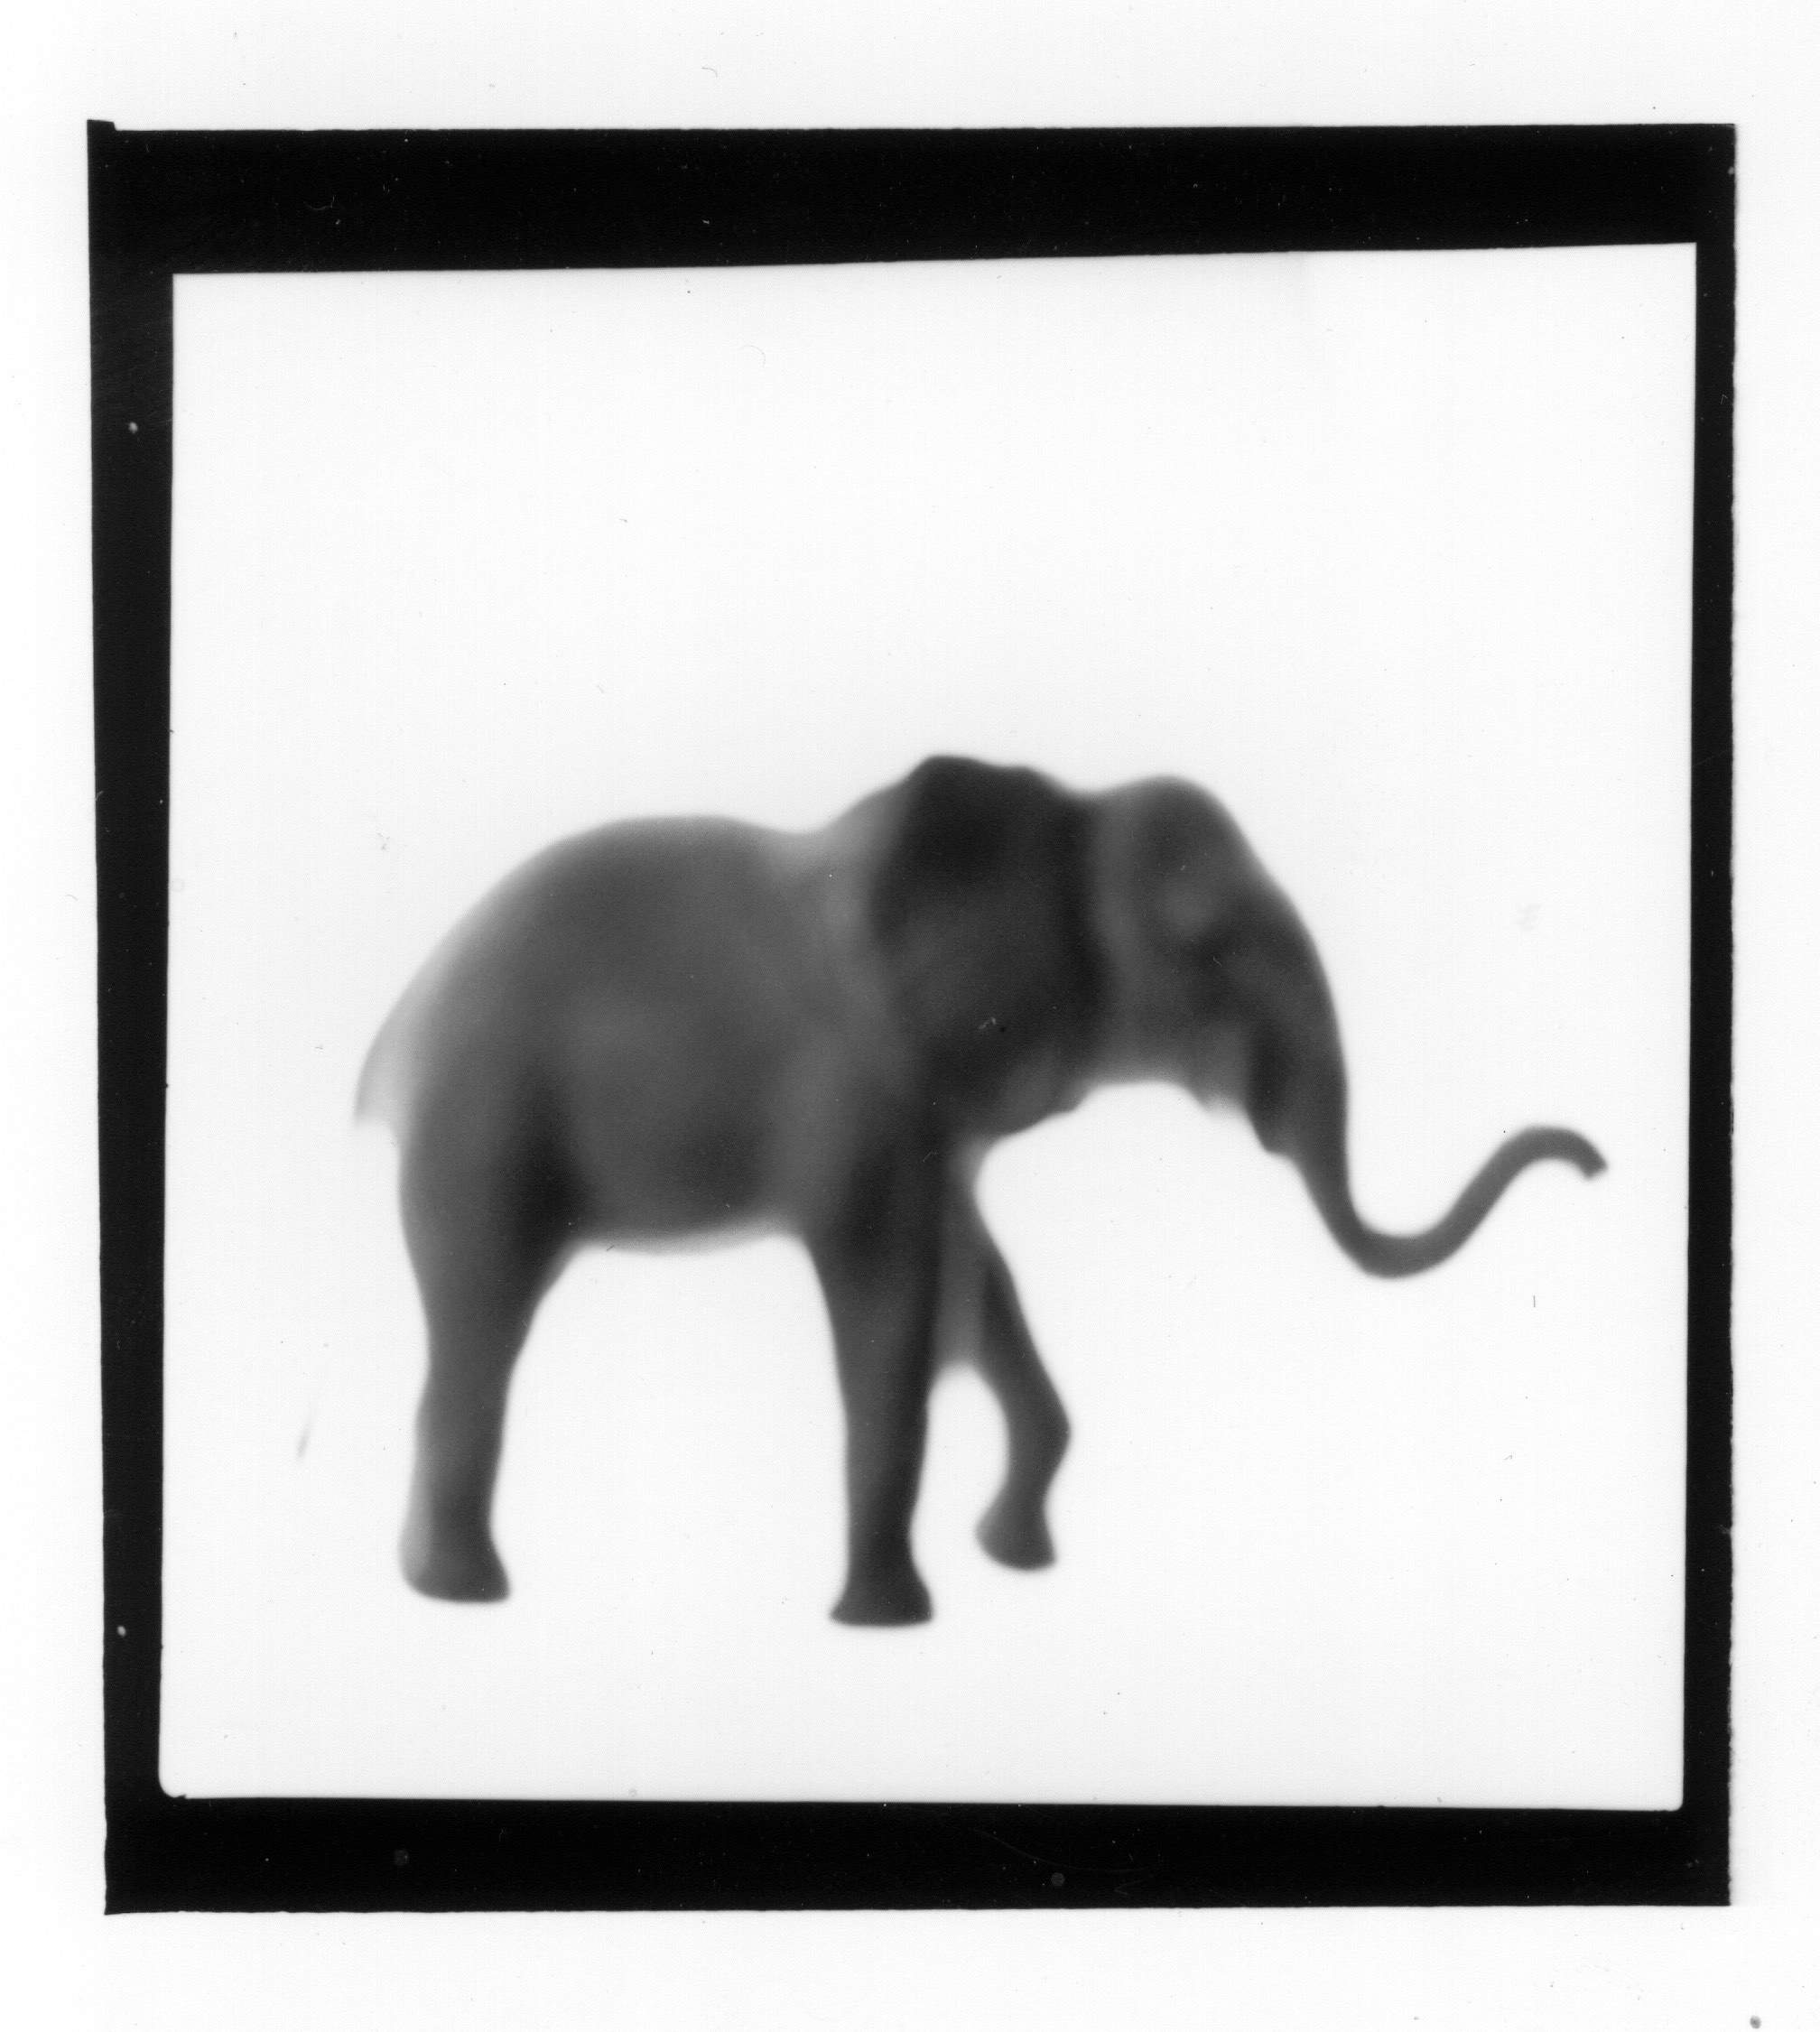 Elephant from The Animals Series, 2000